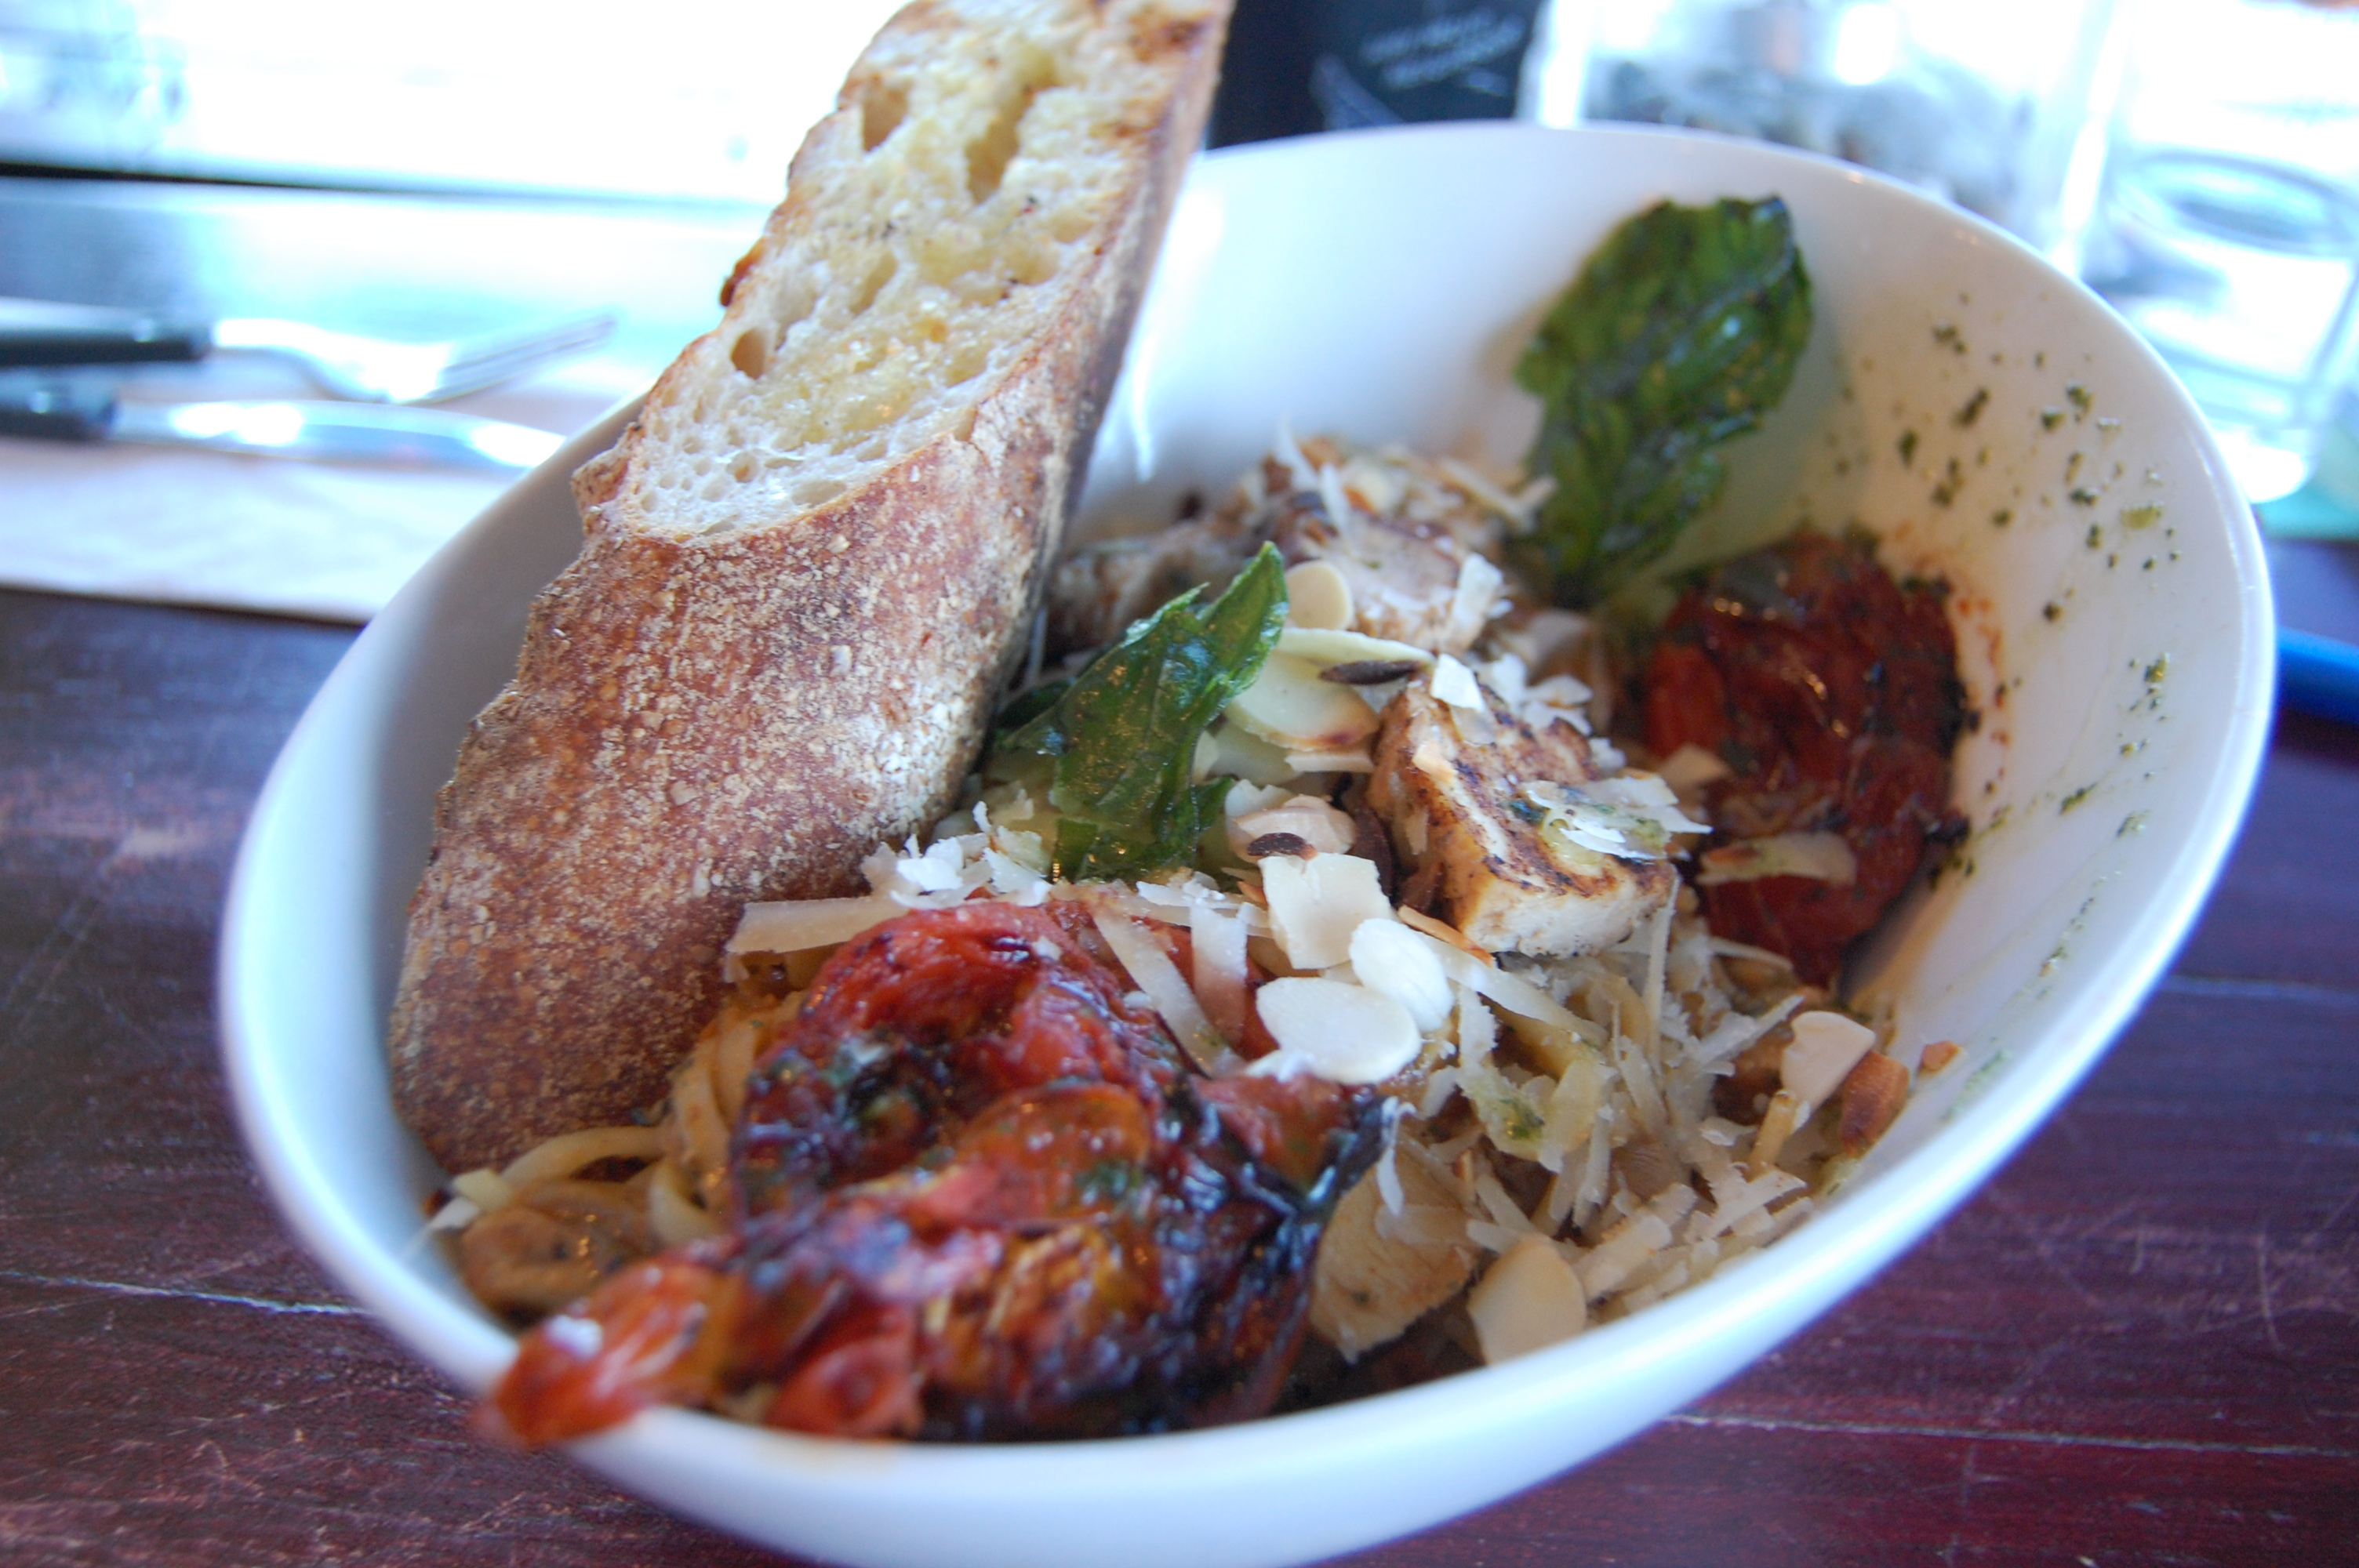 Eat In Harmony At The Butcher And The Vegan Restaurant